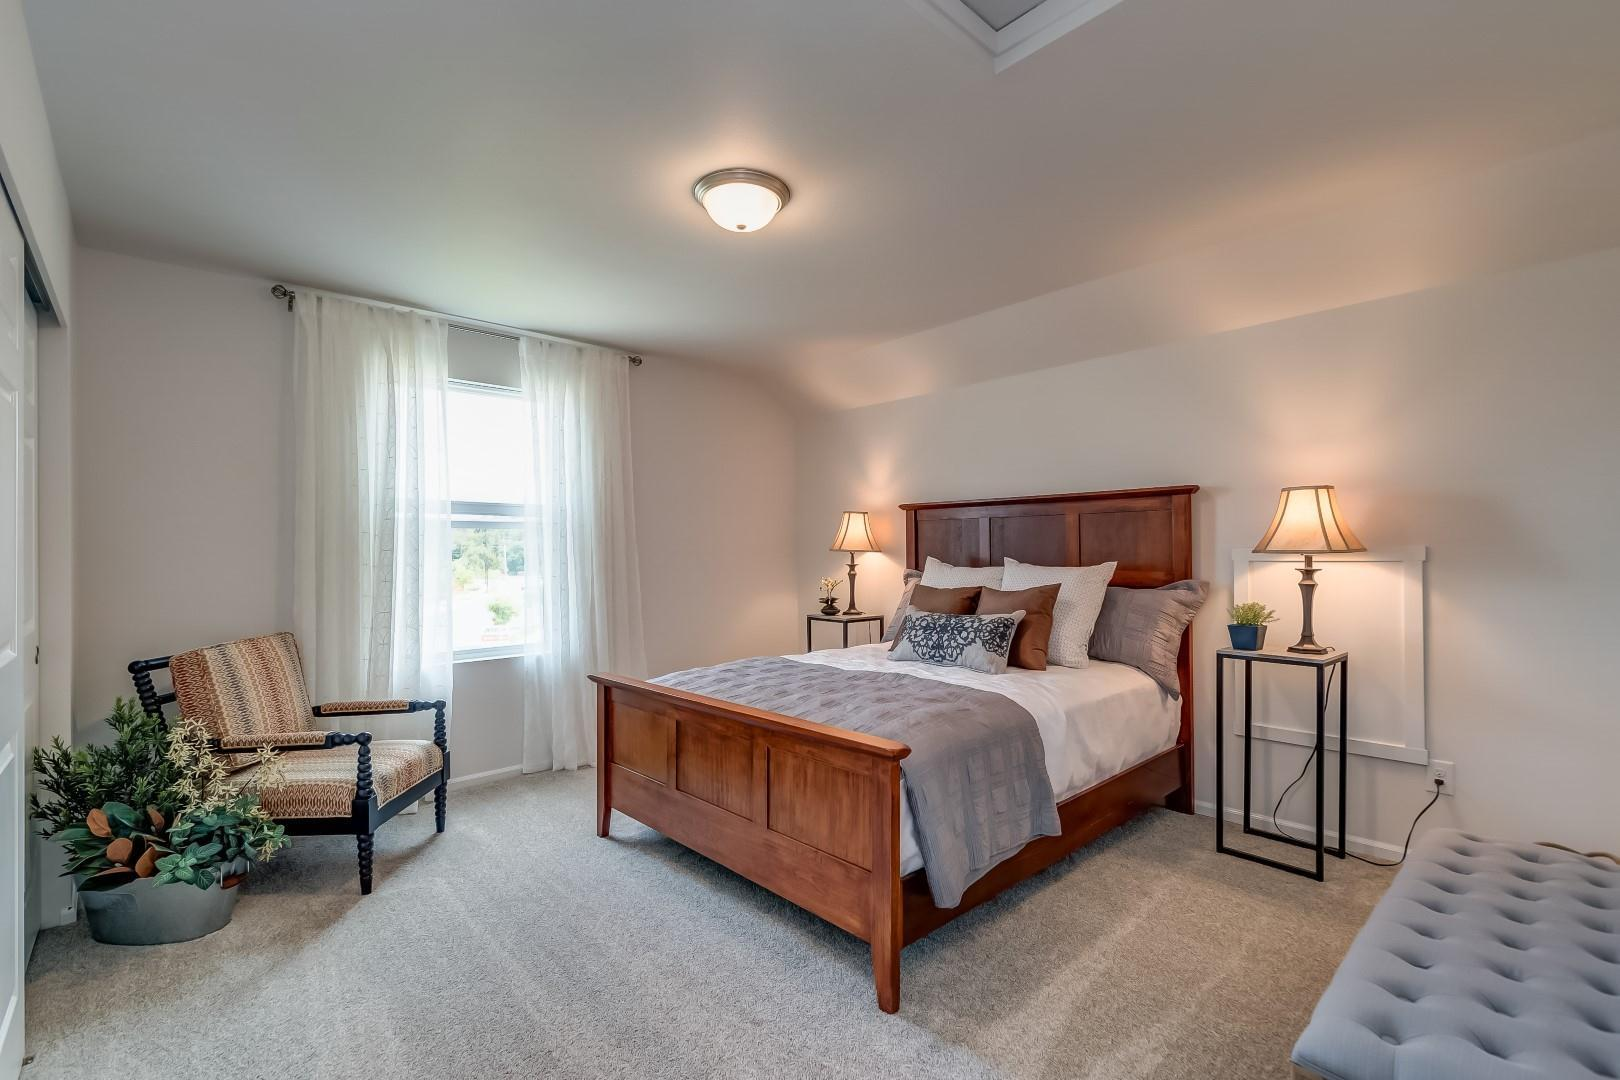 Bedroom featured in the CC Birch By Landed Gentry Homes in Bellingham, WA